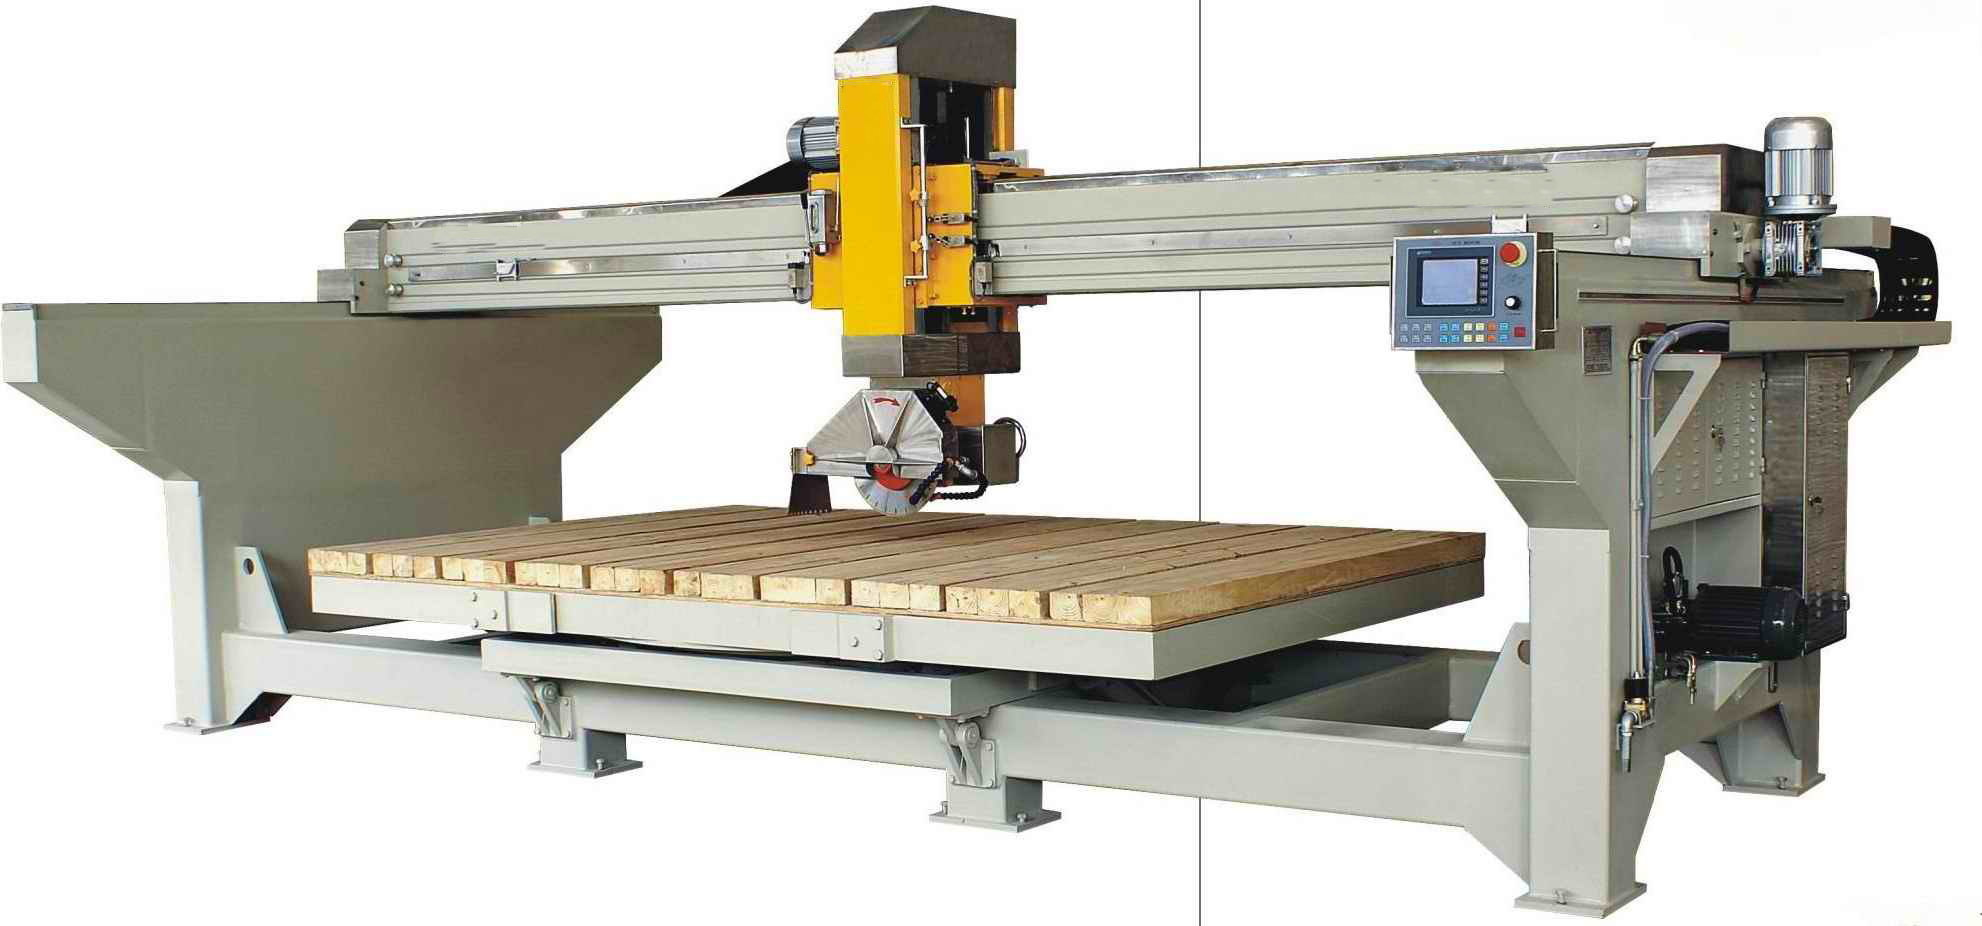 Automatic Bridge Saw with 45 Degree Table Tilting